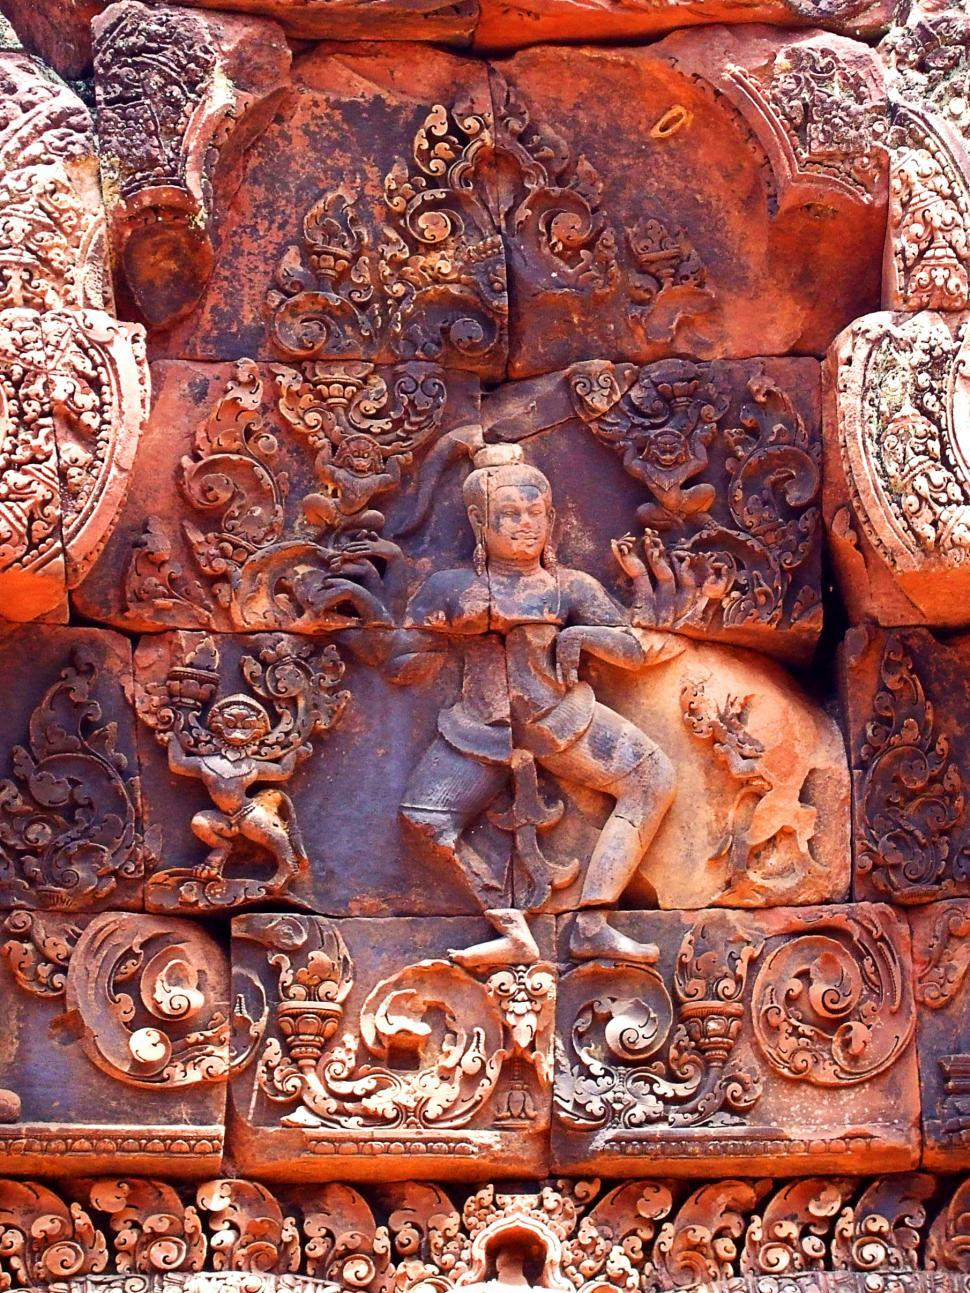 Download Free Stock HD Photo of Pink stone carvings of Banteay Srei - Siemreap - Cambodia Online